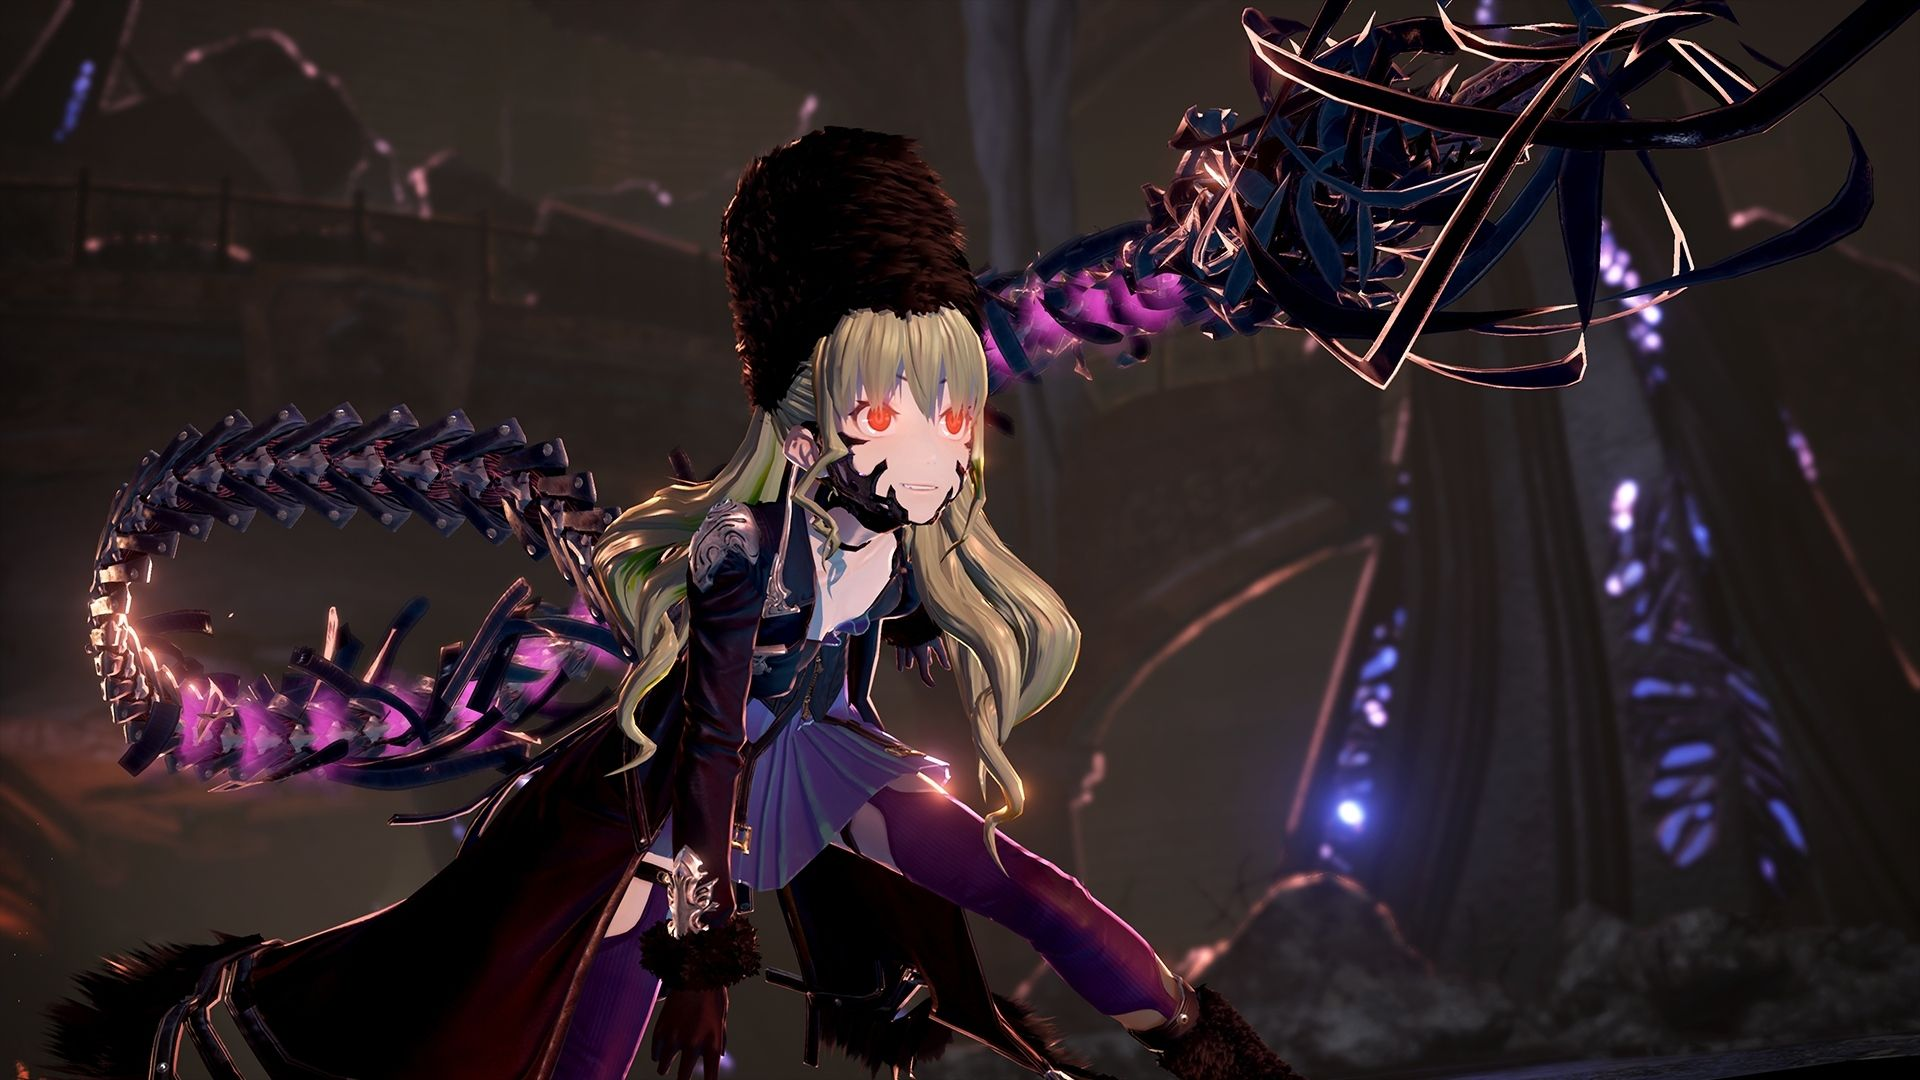 Awesome Code Vein Girl Character Game 1920x1080 Wallpaper Anime Style Coding Dark Souls